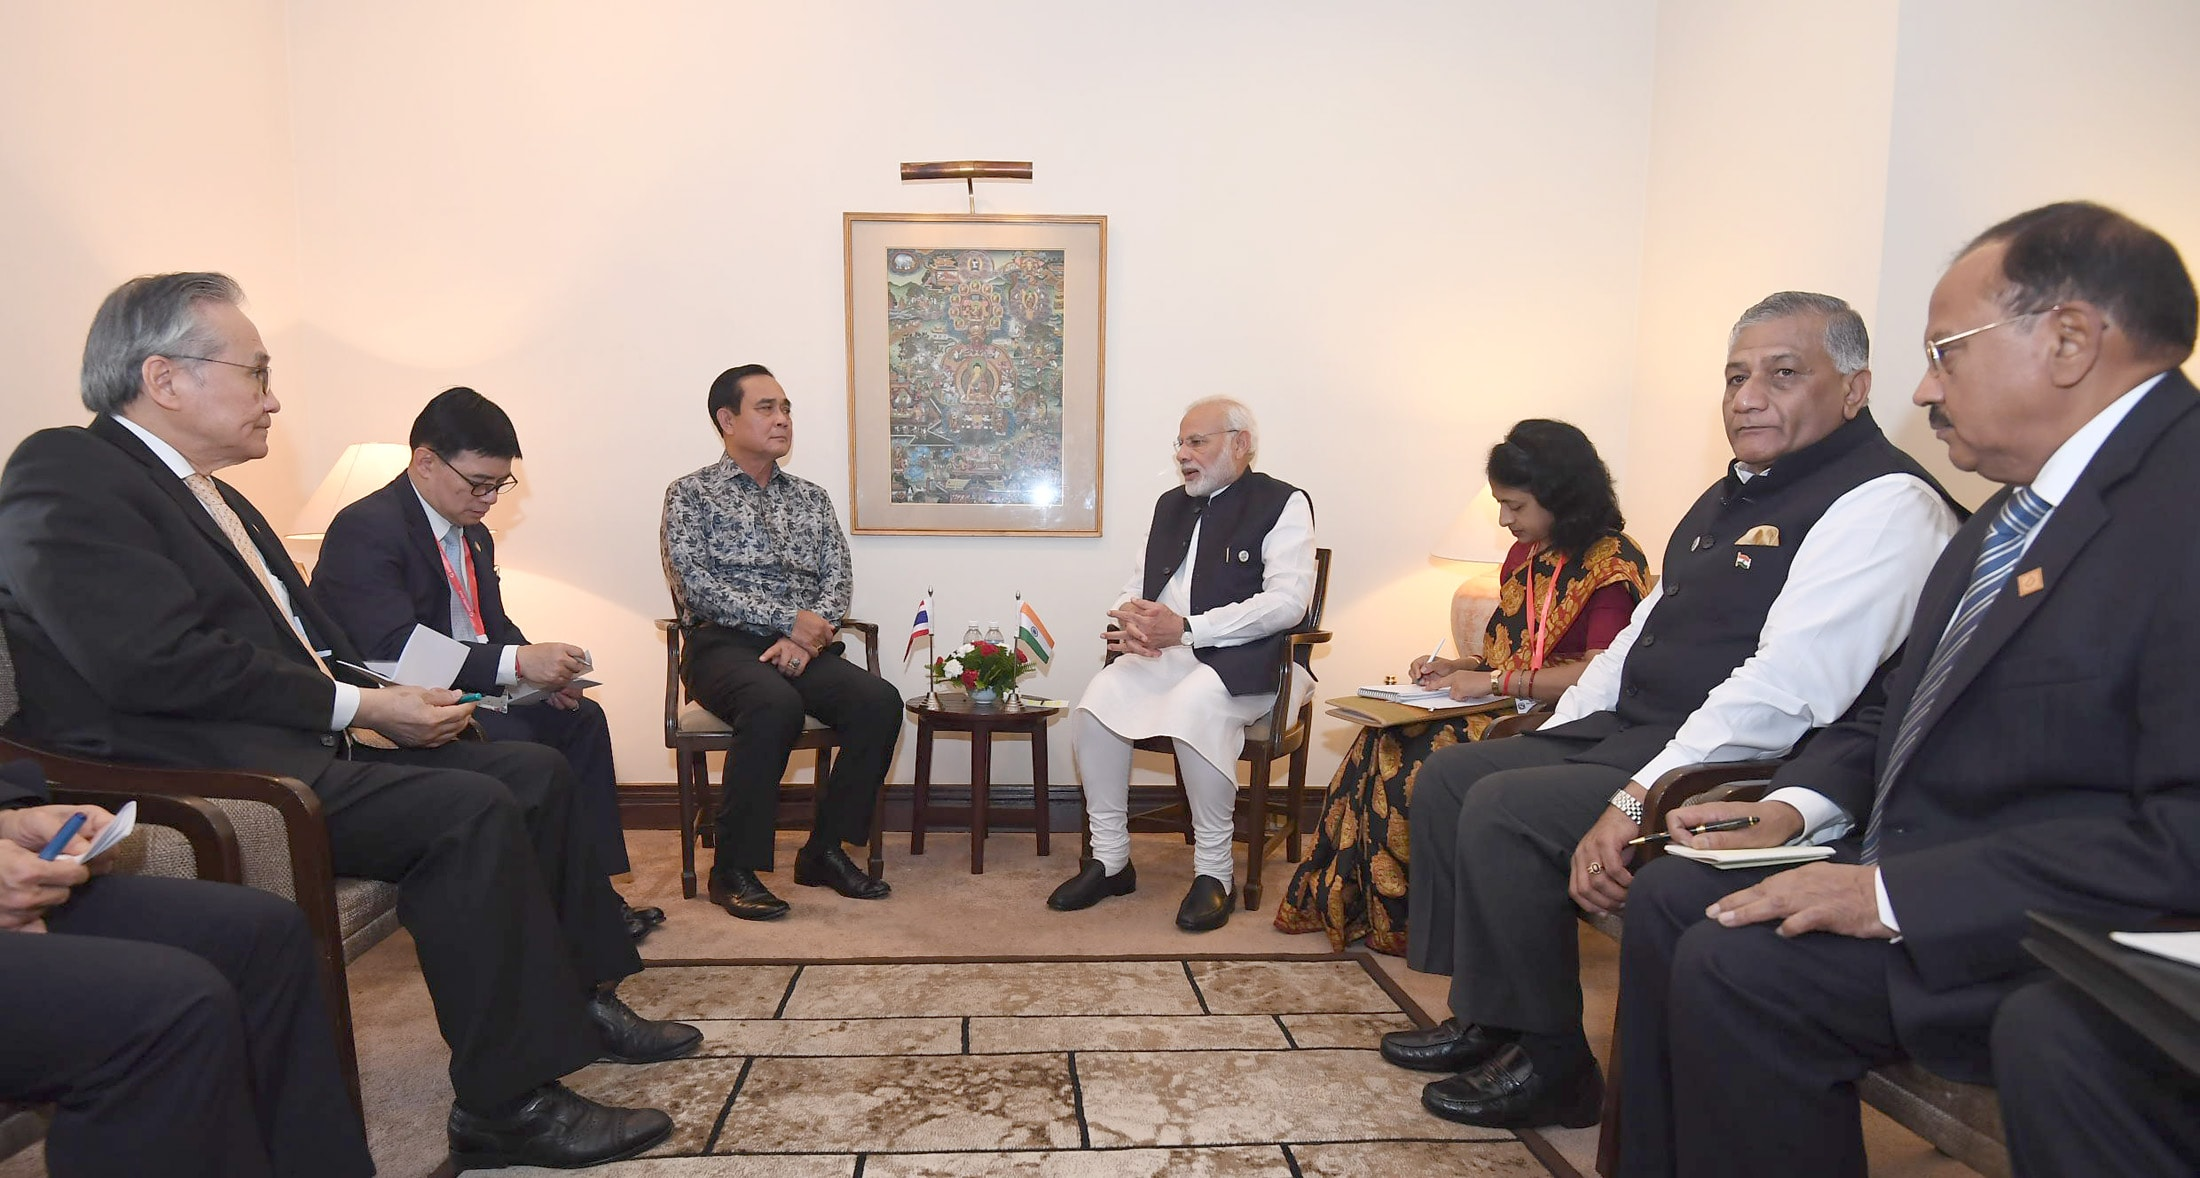 Maithripala Sirisena and narendra modi at kathmandu in Bimstec Summit 2018